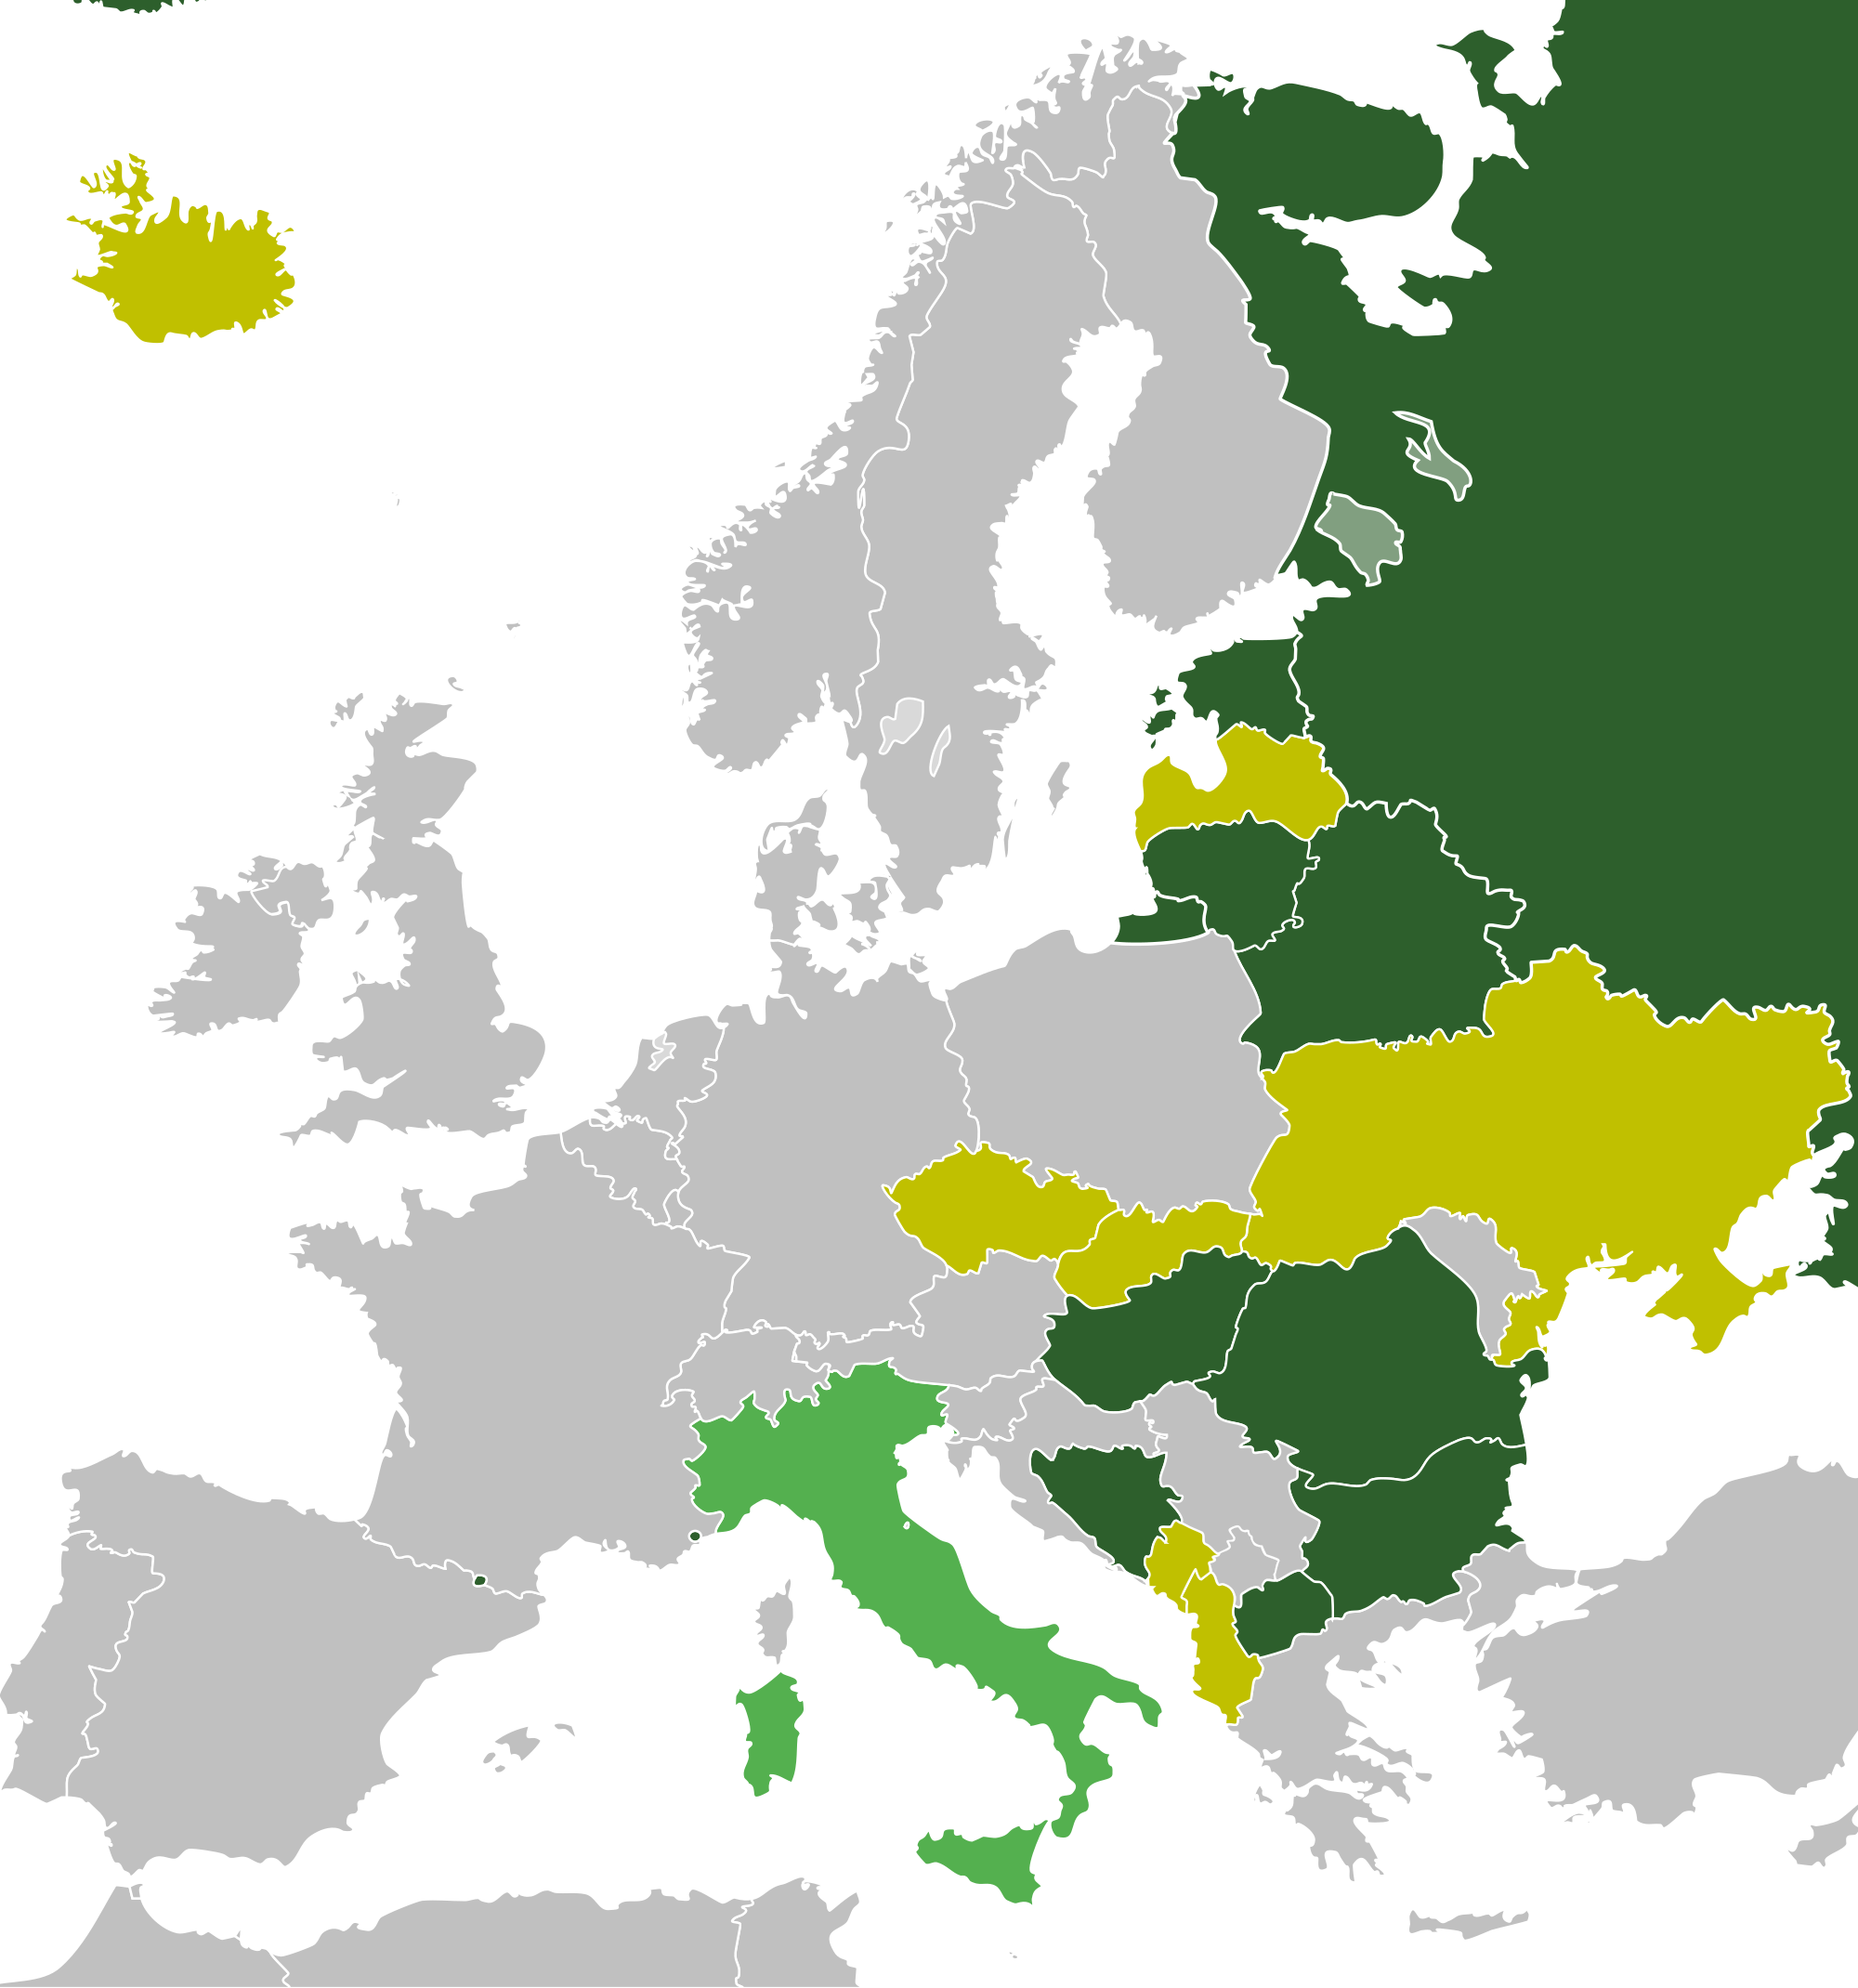 Atlas of wikimedia commons. Europe clipart political map